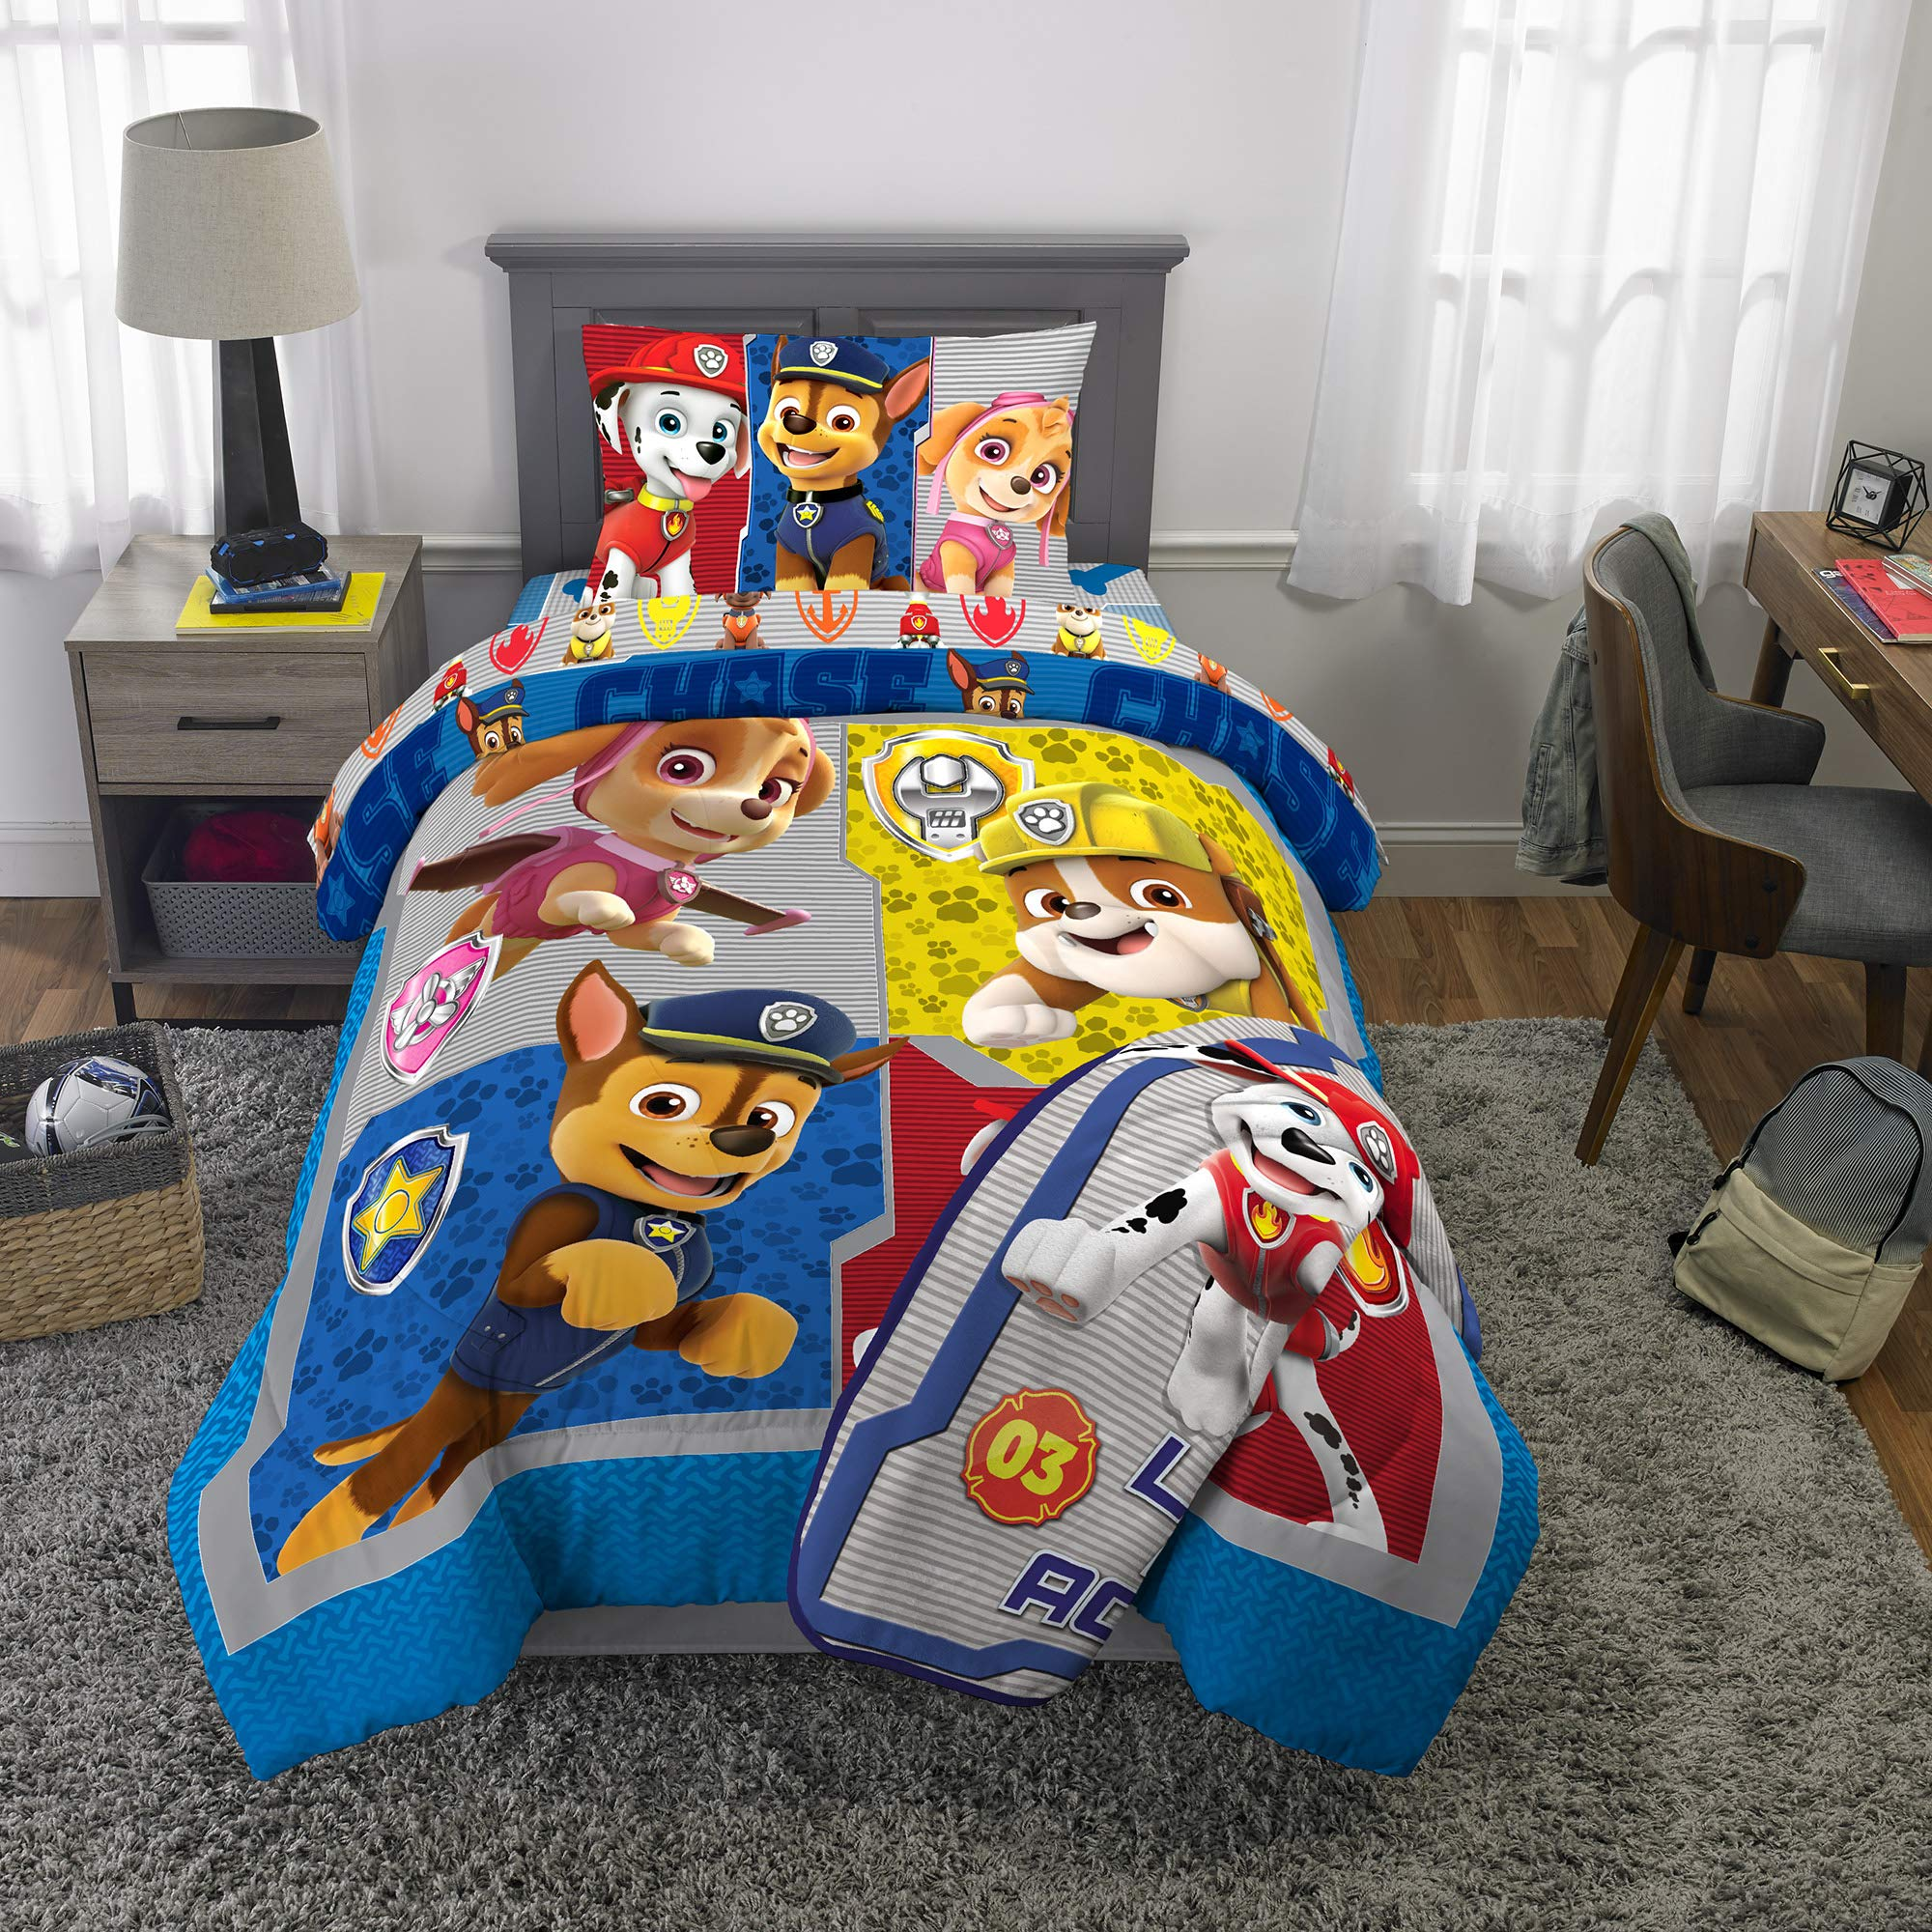 Nickelodeon Paw Patrol Super Soft Kids Bedding Set, 5 Piece Twin Size, Includes Grey Leap Into Action Throw by Nickelodeon